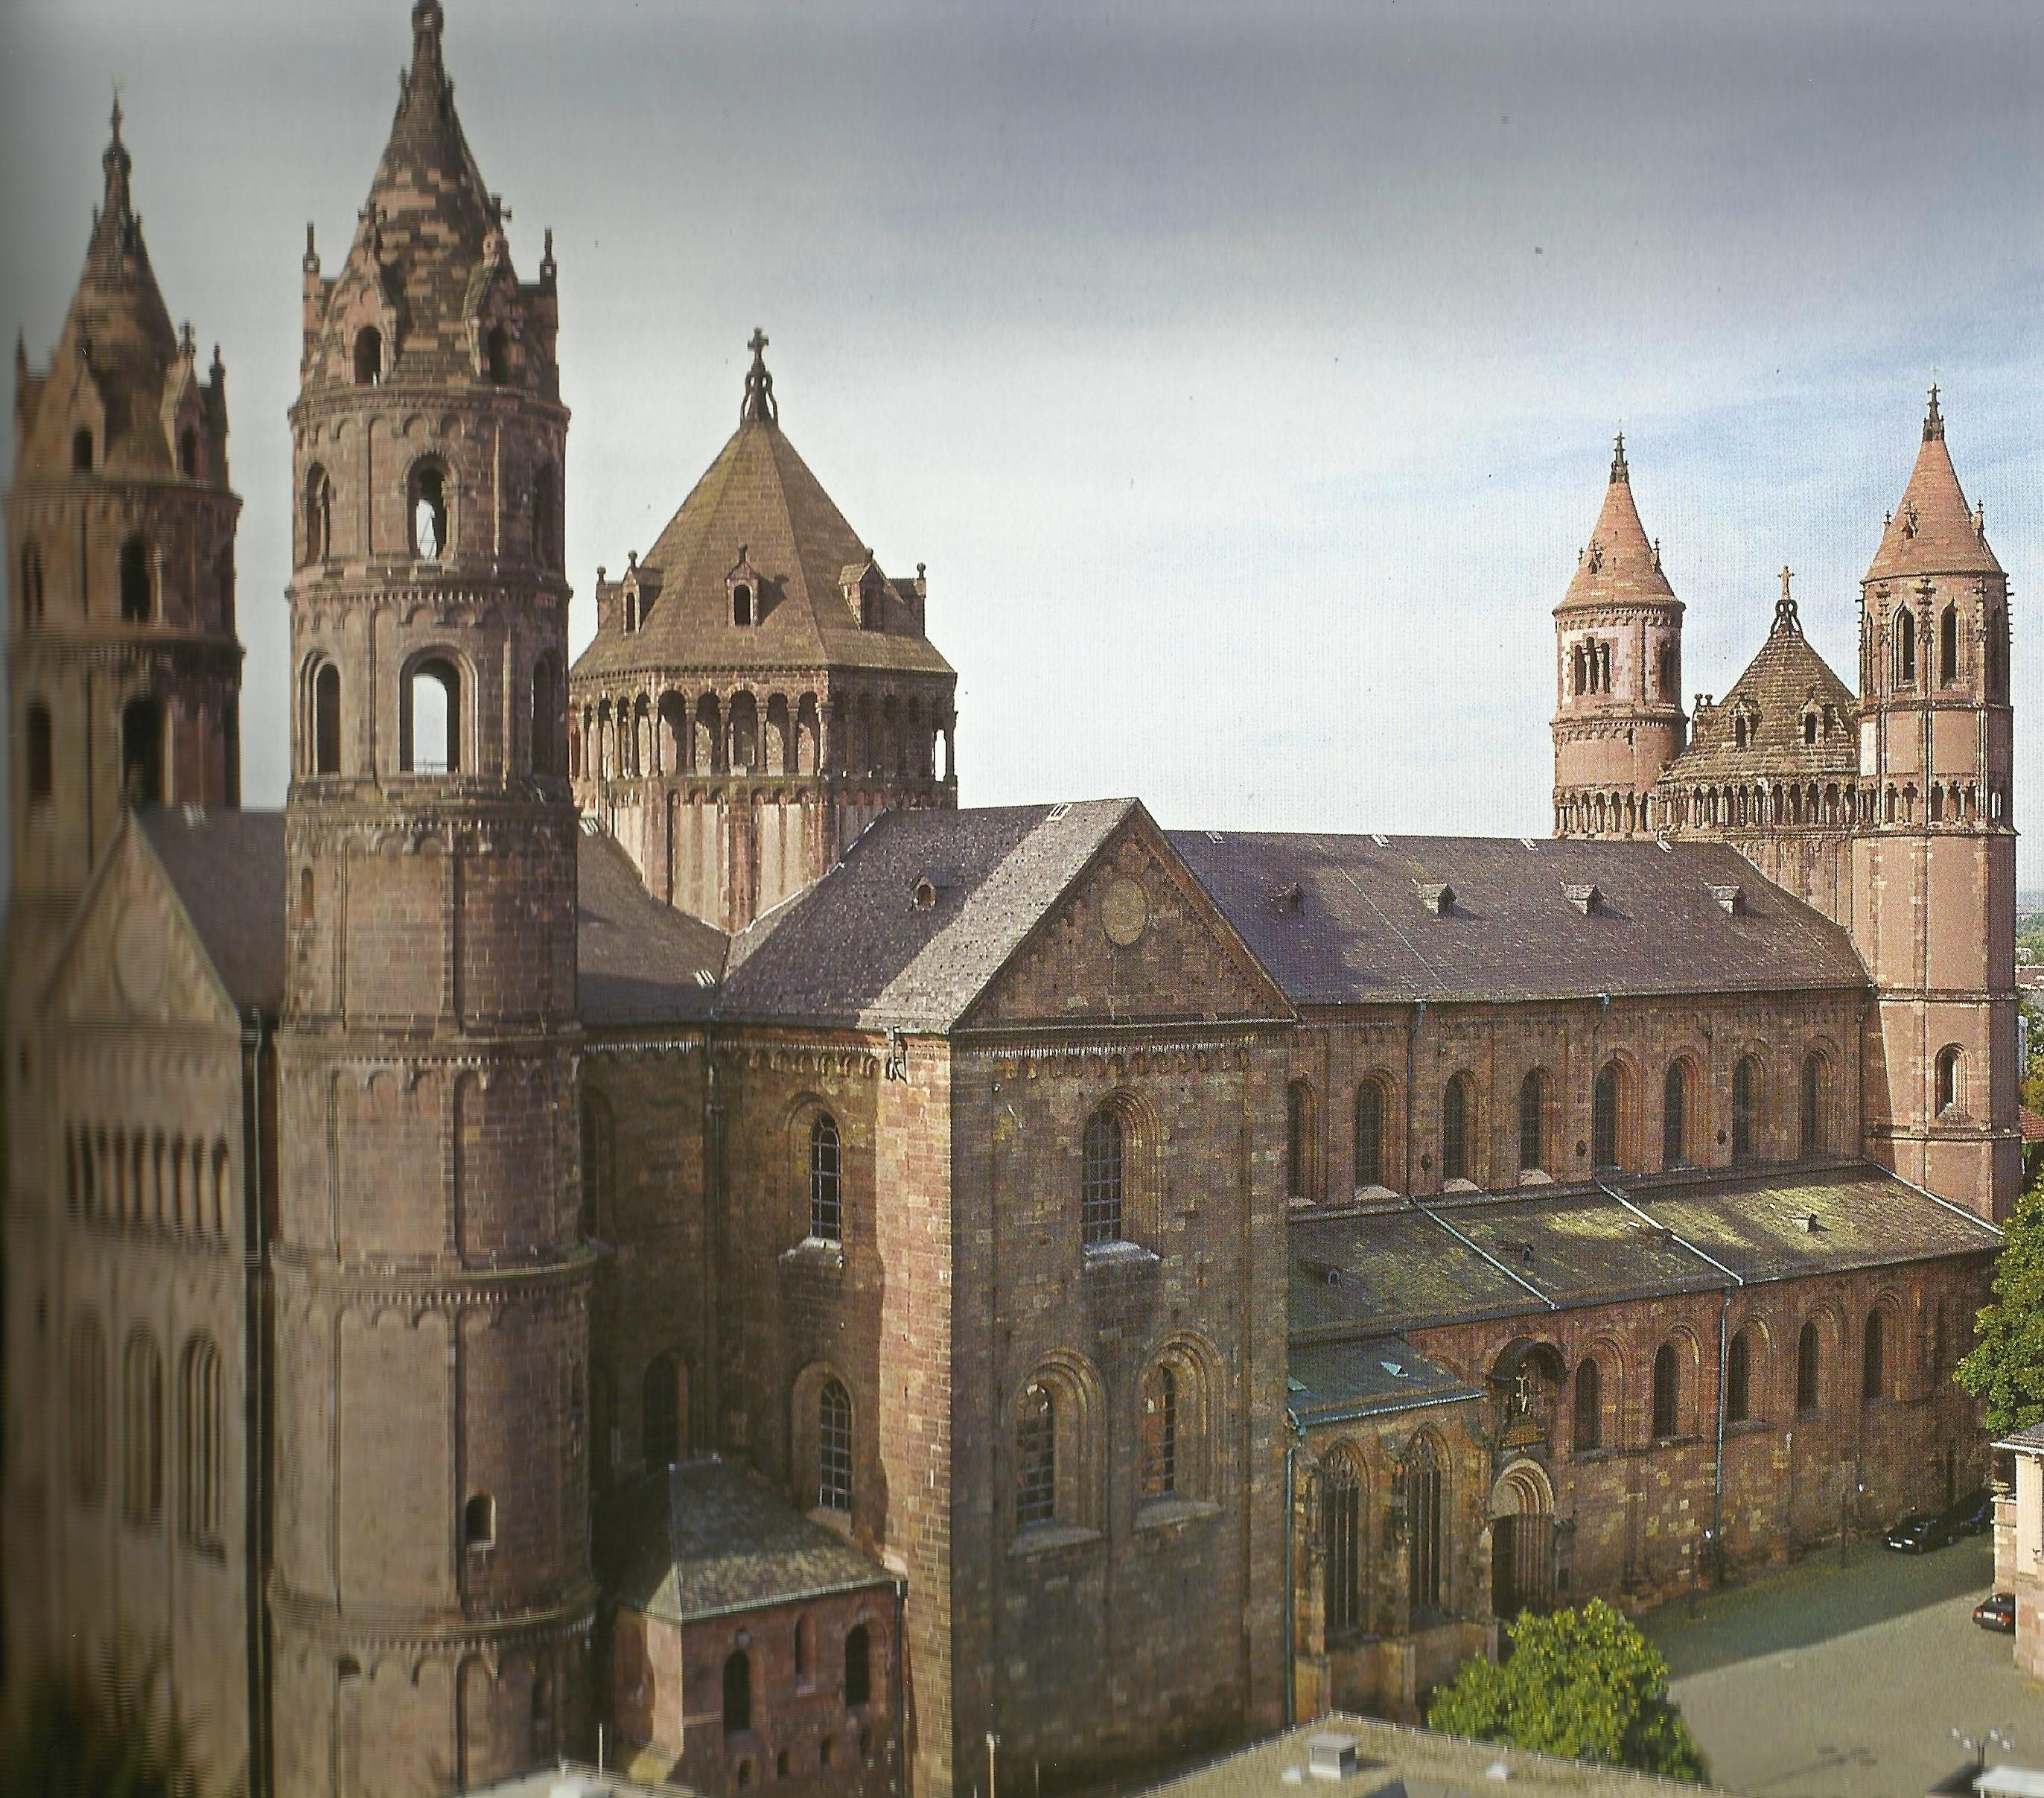 Architekt Worms Worms Cathedral Germany Northwest View A Great Example